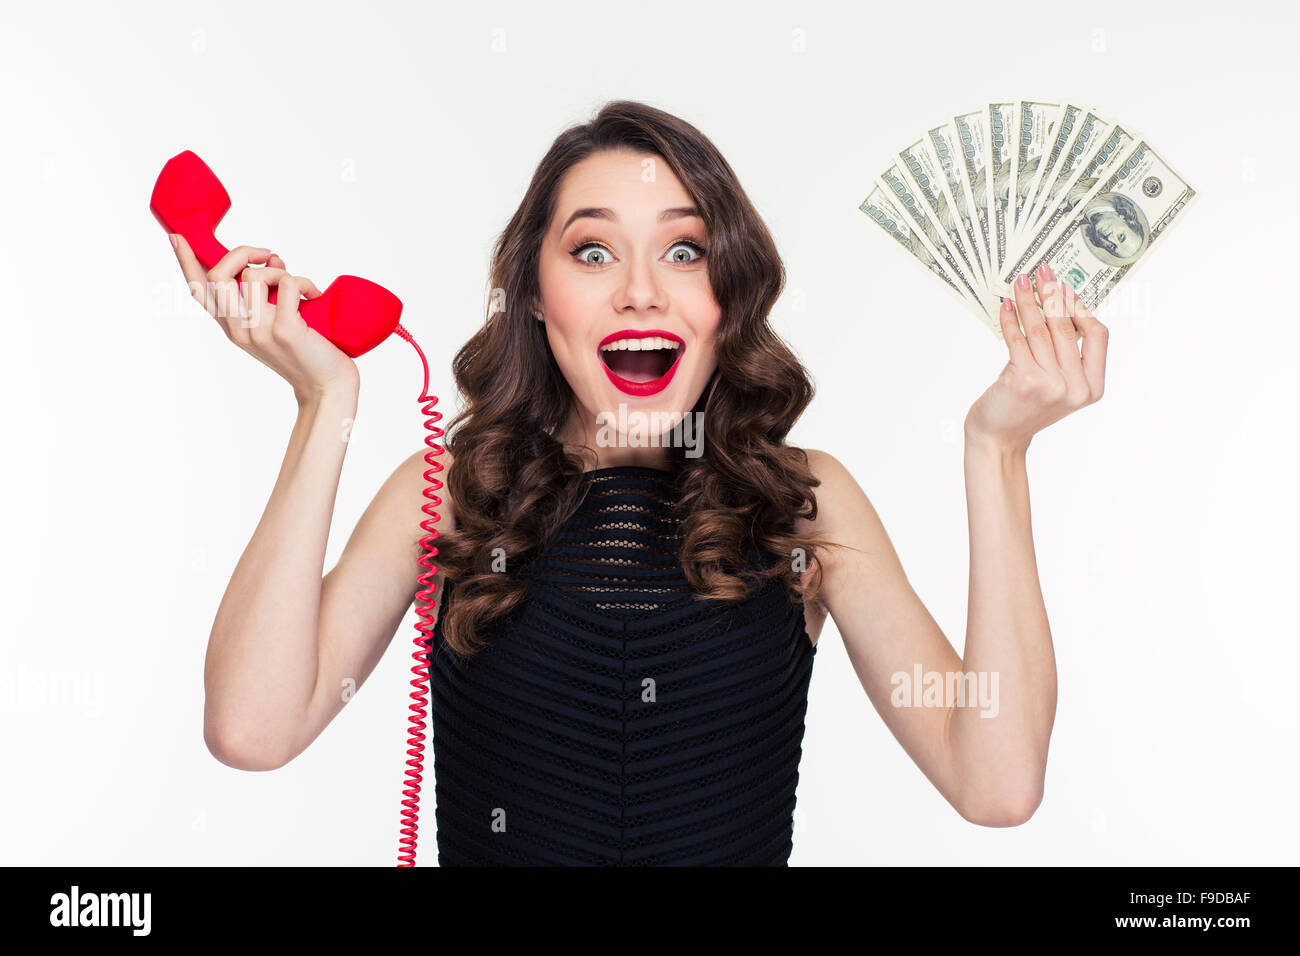 Beautiful excited happy young woman in retro style holding money and telephone receiver over white background Stock Photo